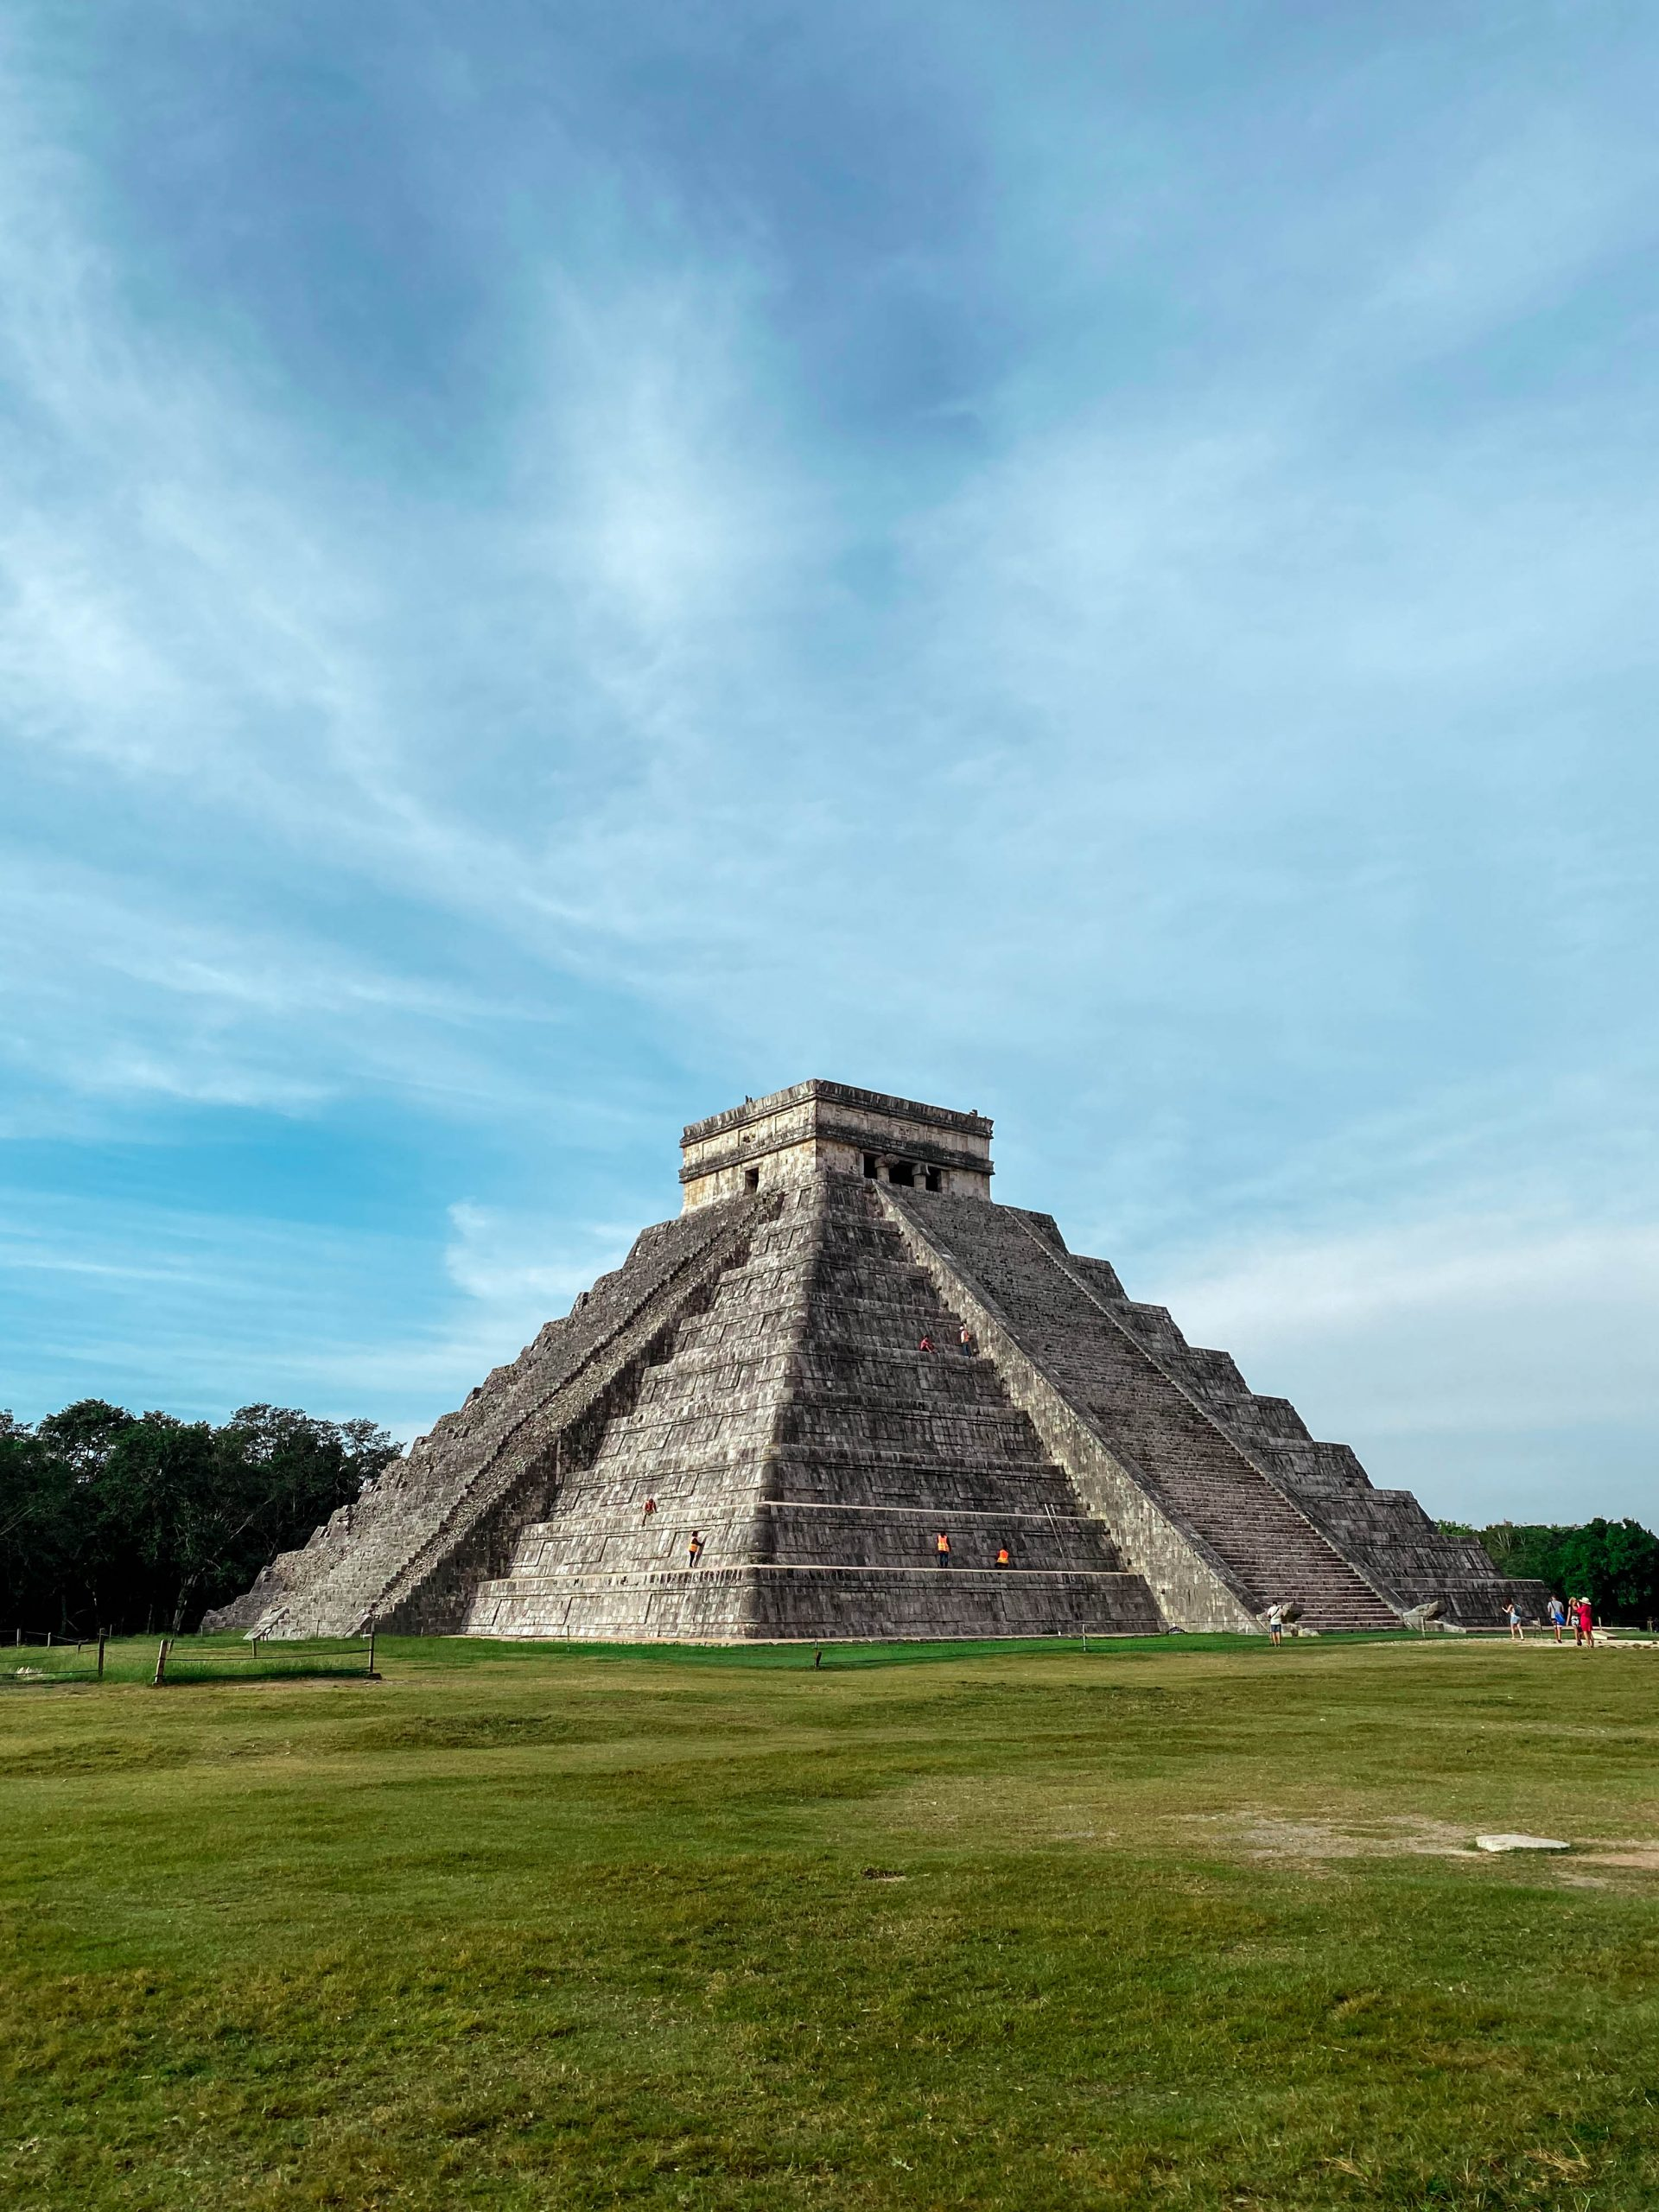 chichen itza morning opening time el castillo pyramid temple of kukulkan yucatan mexico